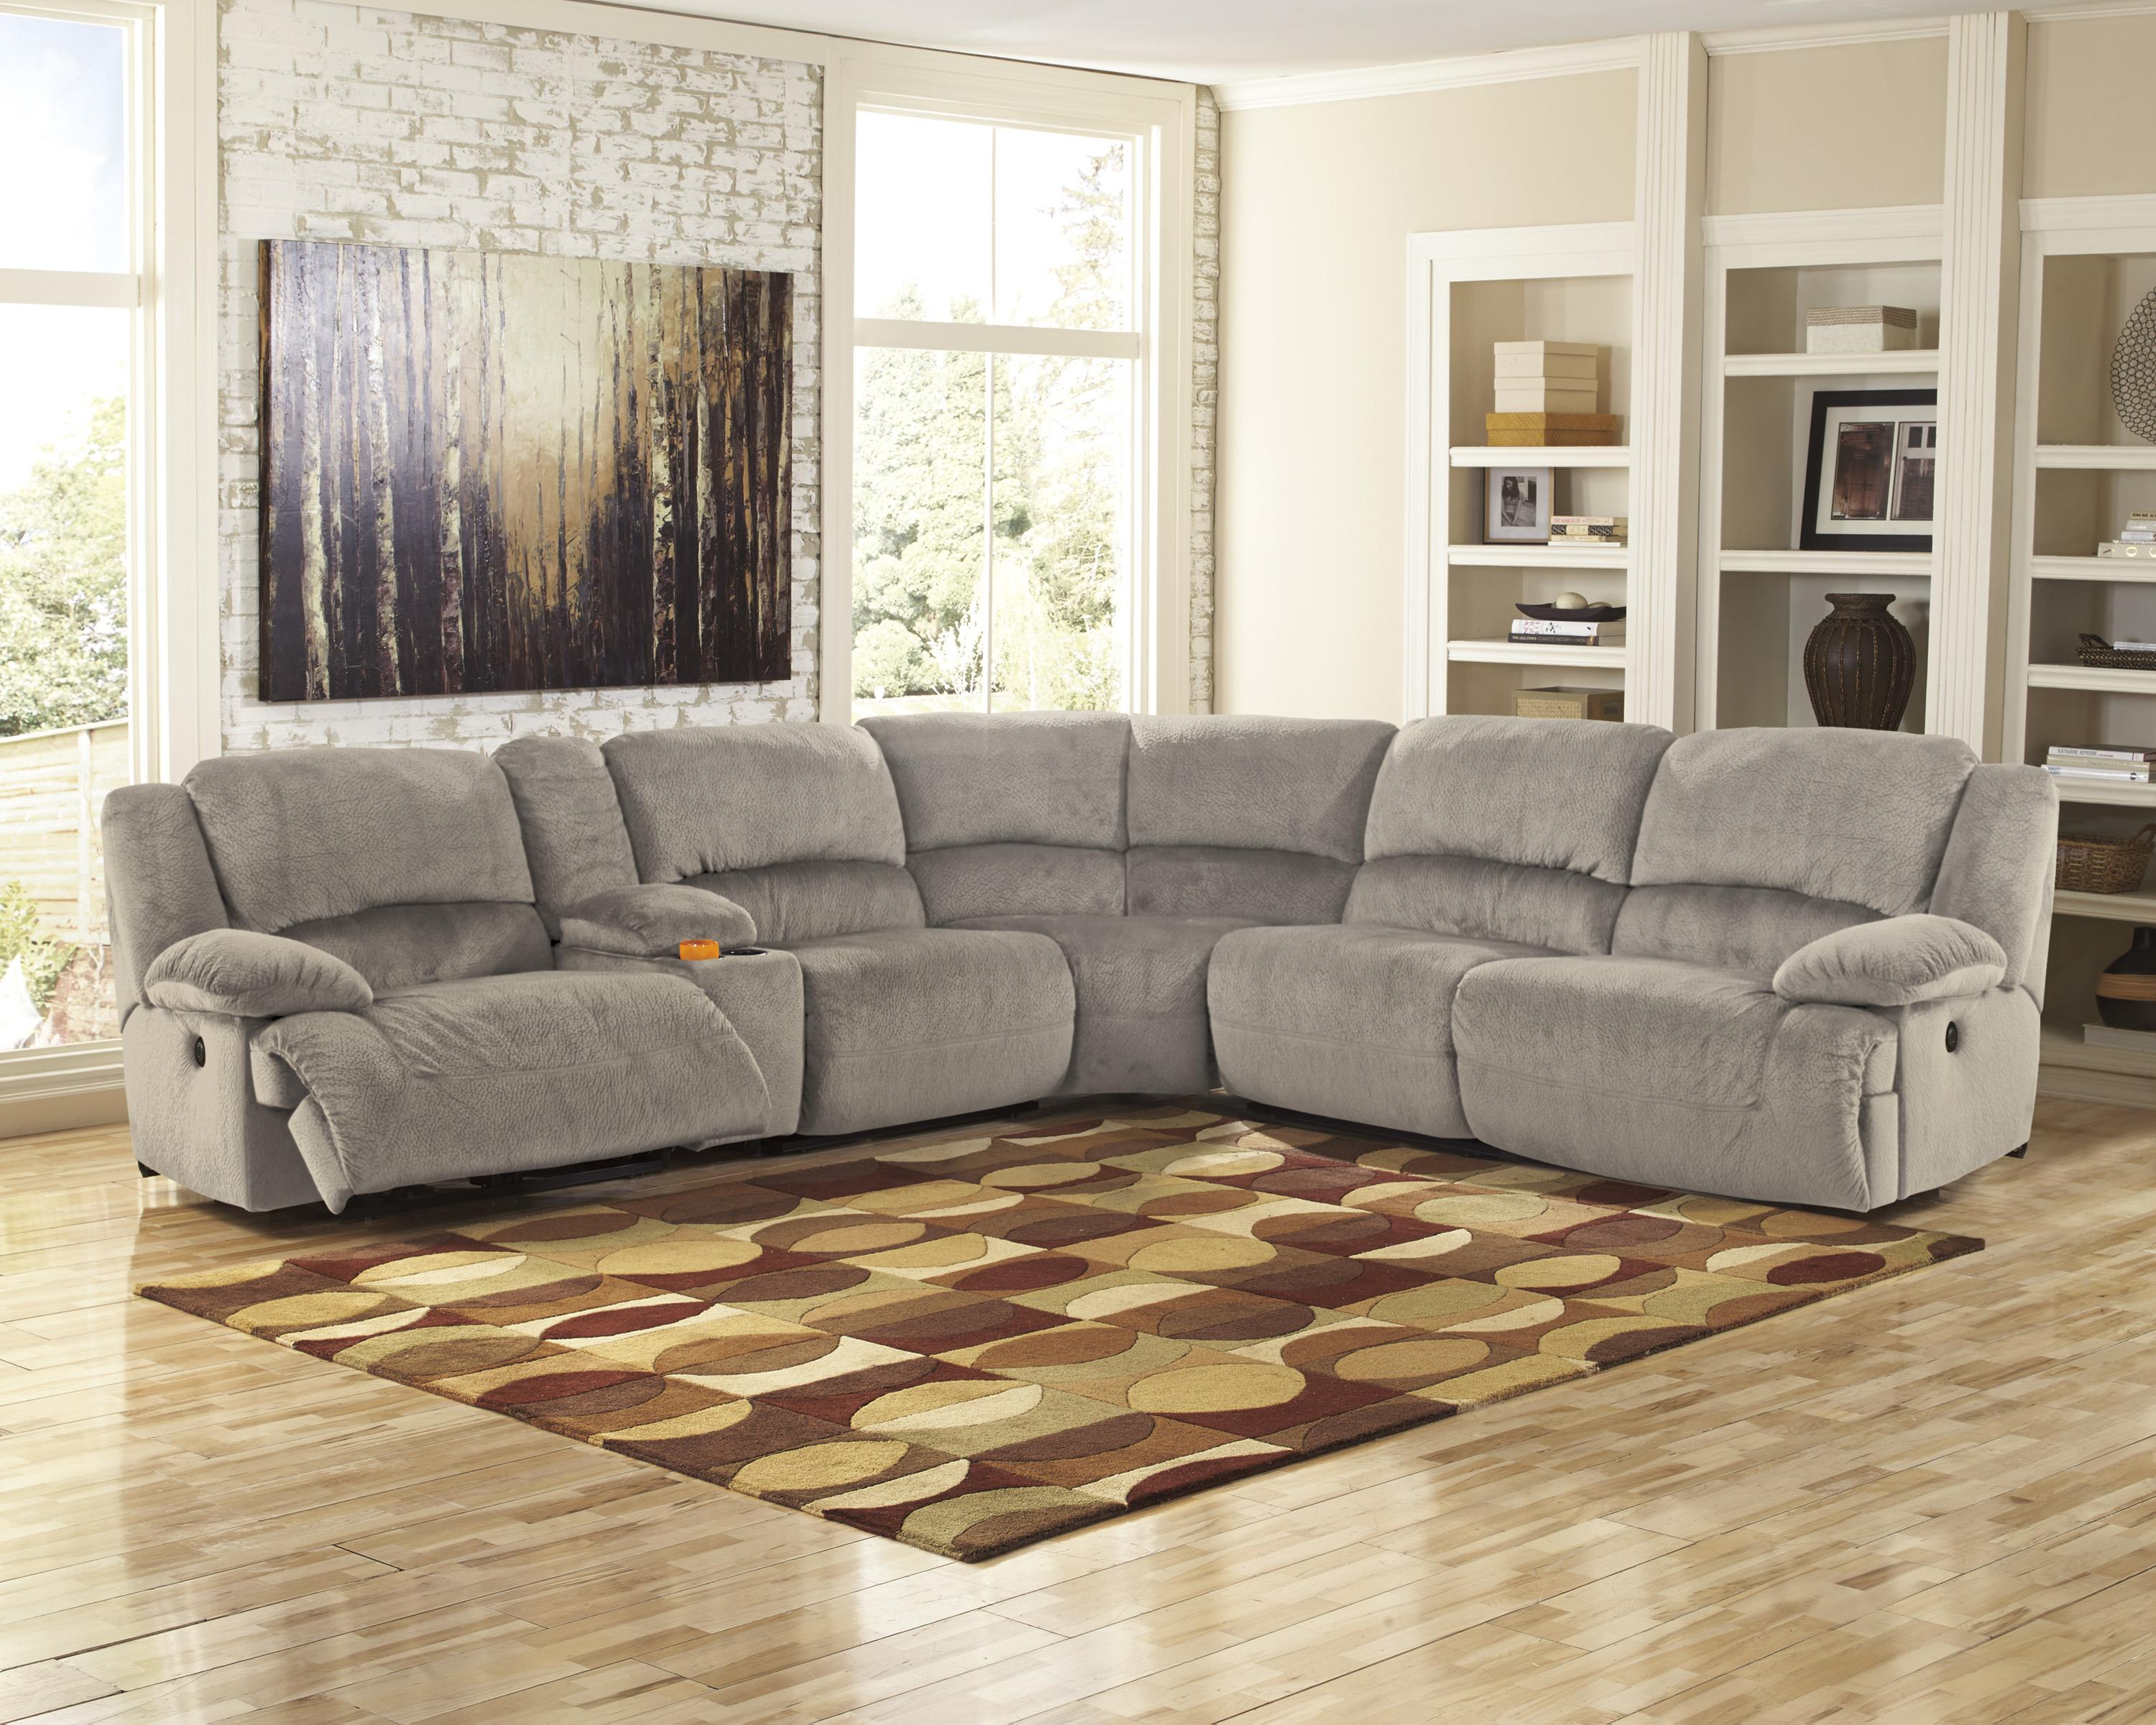 Signature Design by Ashley Toletta - Granite Reclining Sectional with Console u0026 Right Press Back Chaise - Wayside Furniture - Reclining Sectional Sofas : recliner chaise - Sectionals, Sofas & Couches